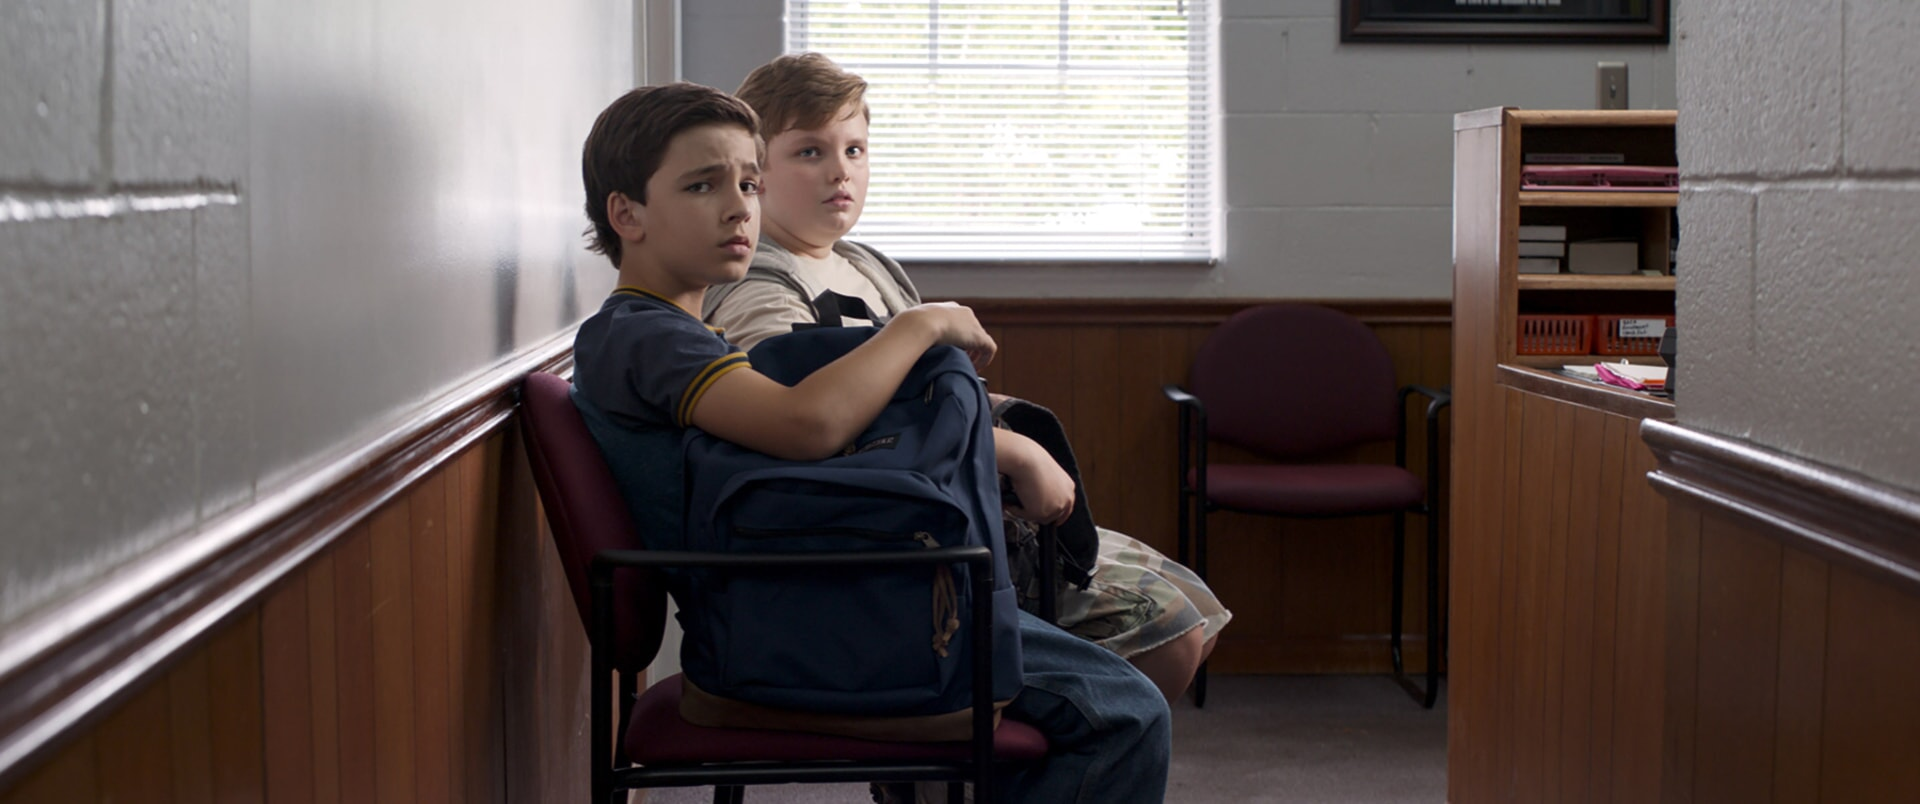 """BRYCE GHEISAR as Alek (11-14) and WILLIAM JENNINGS as Spencer (11-14) in Warner Bros. Pictures' and Village Roadshow Pictures' """"THE 15:17 TO PARIS,"""" a Warner Bros. Pictures release."""